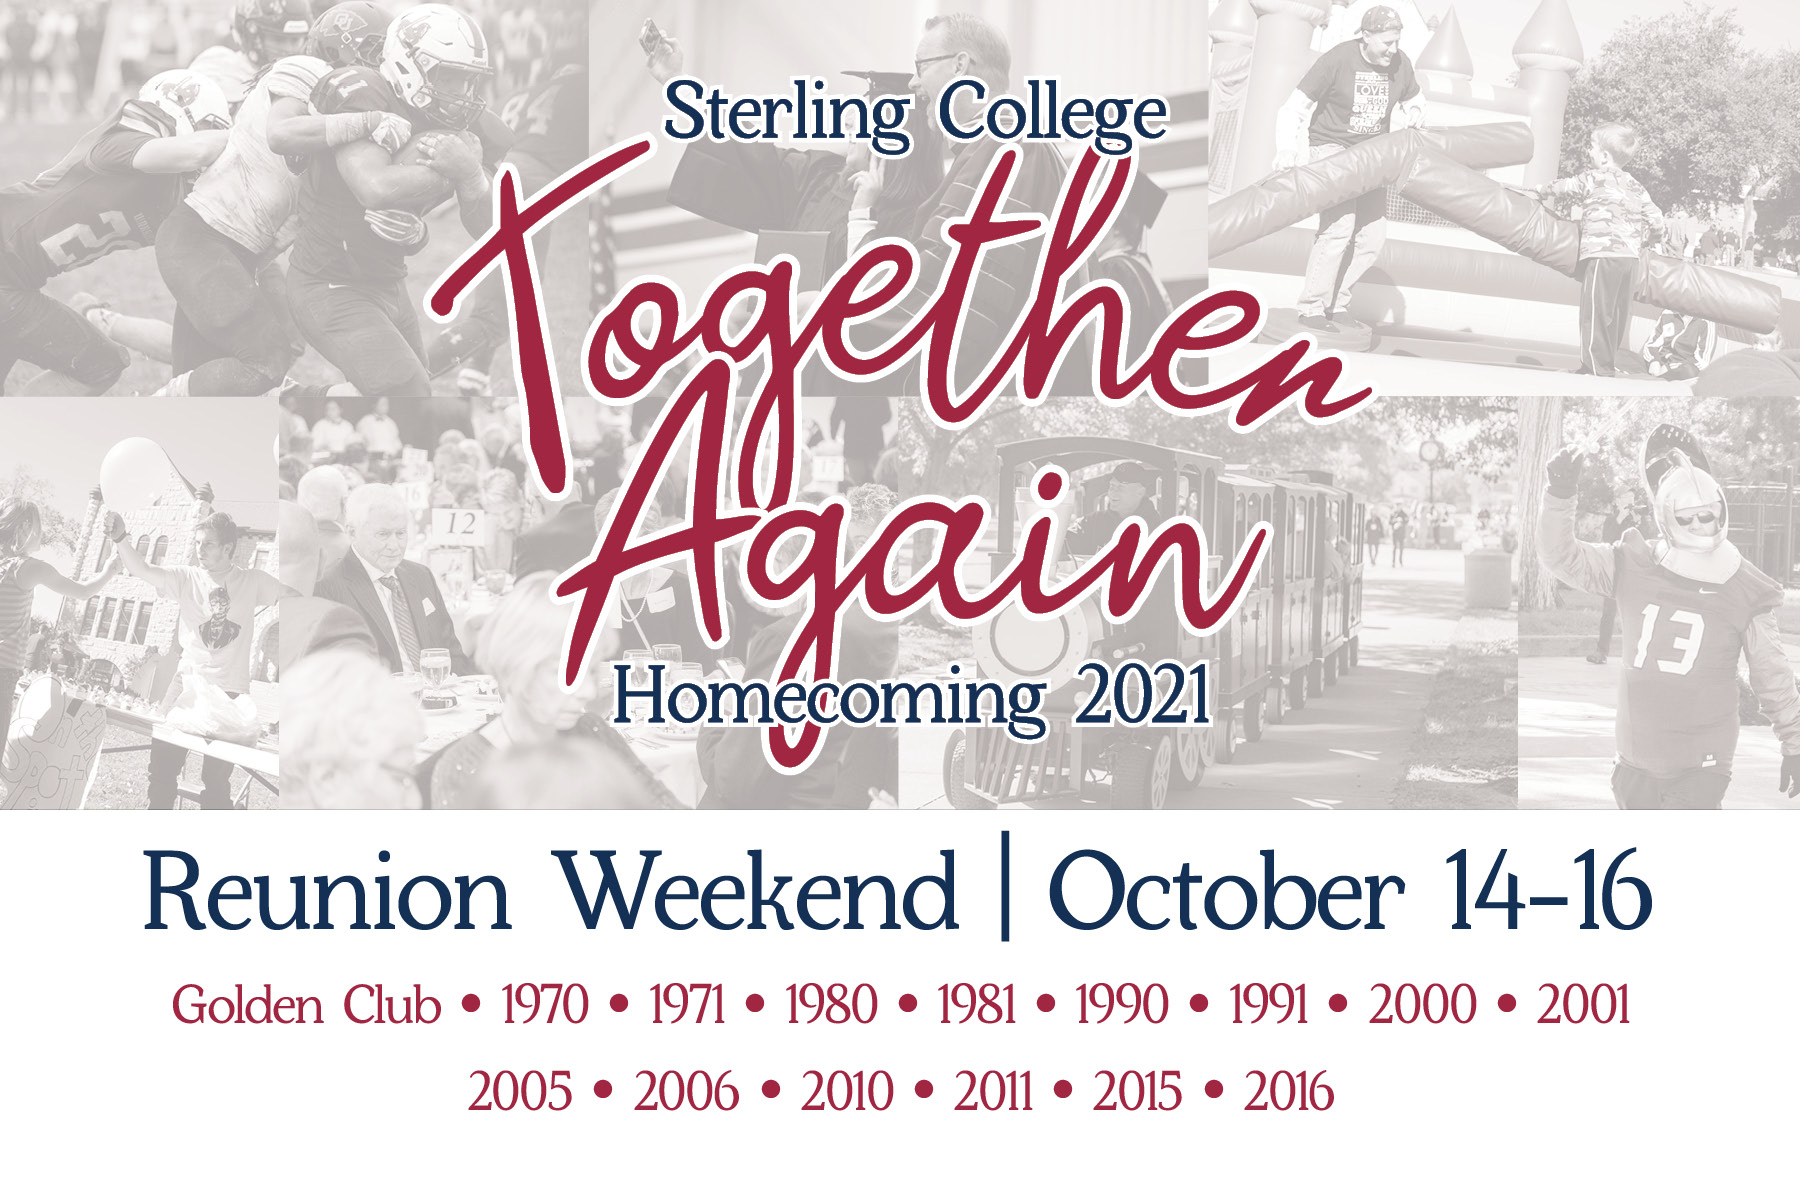 Sterling College 2021 Homecoming